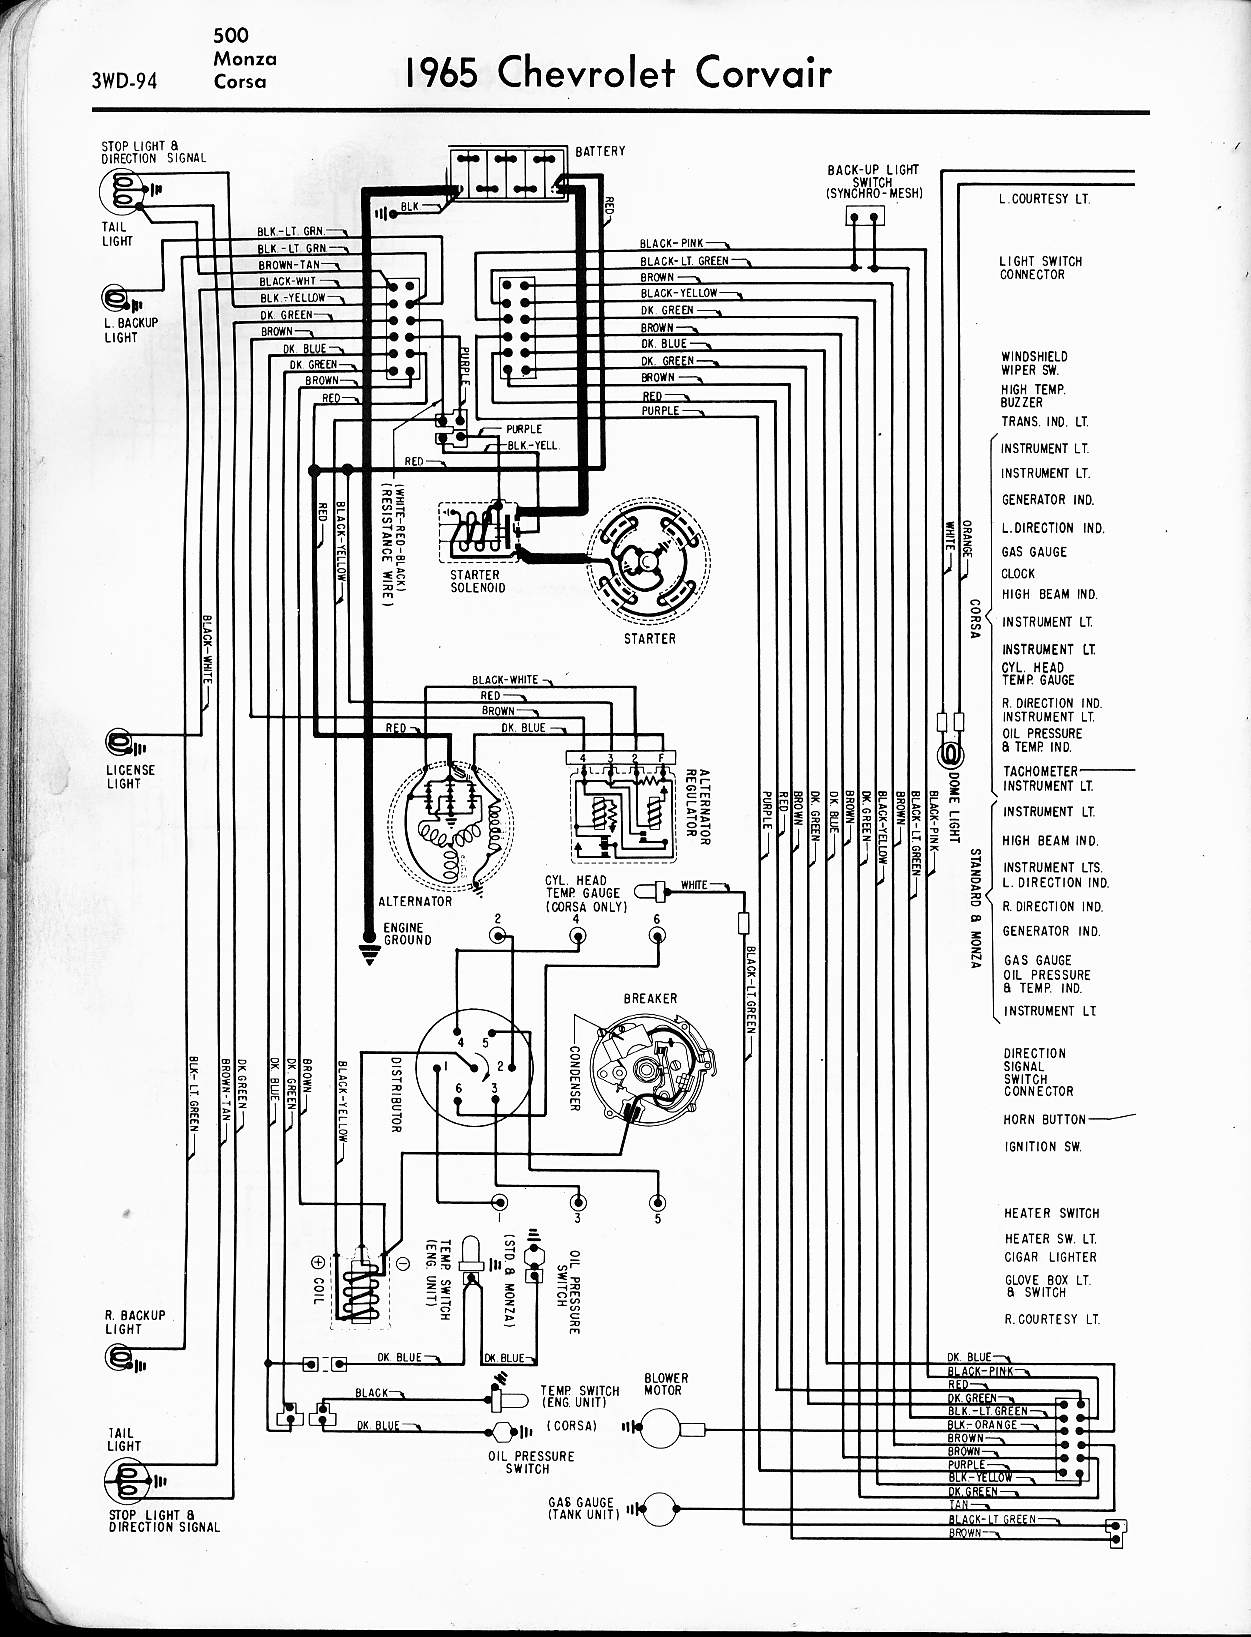 hight resolution of wiring diagram for 1962 chevrolet corvair all models wiringwiring diagram for 1962 chevrolet corvair all models